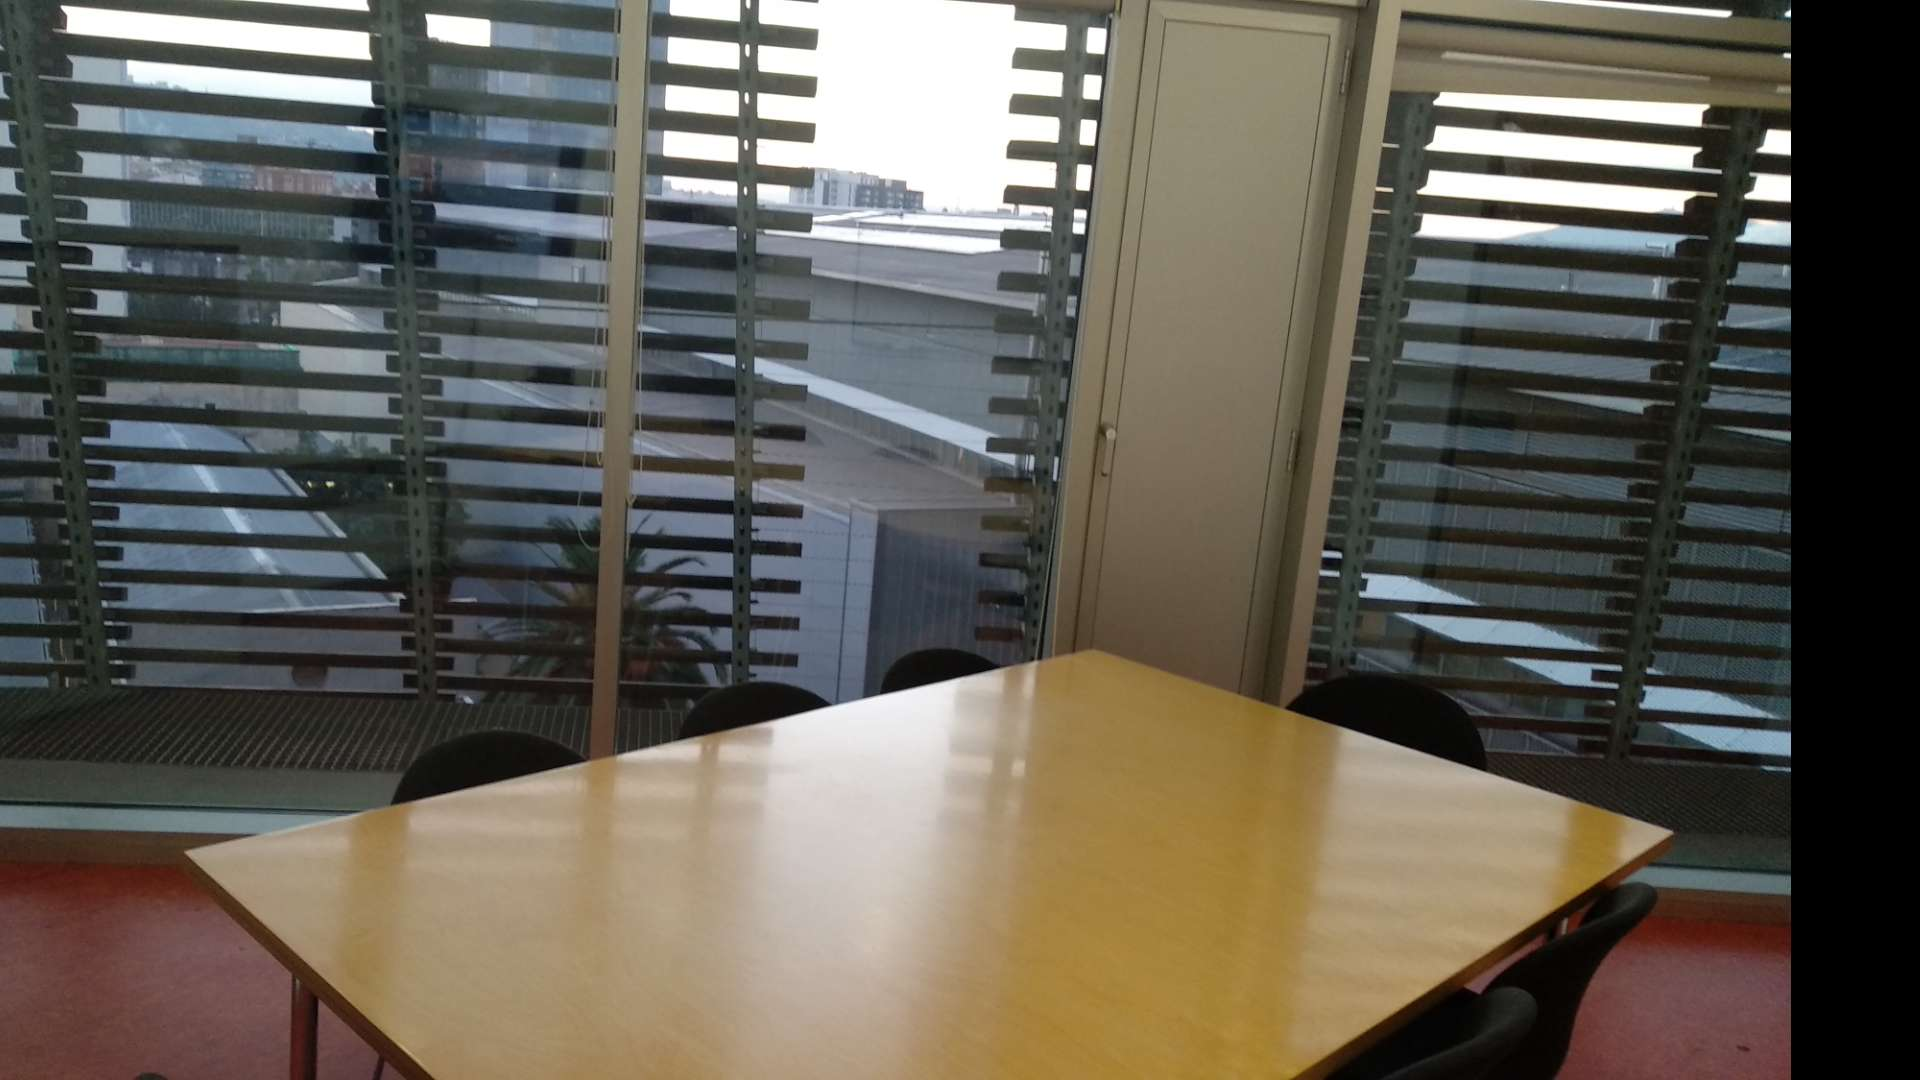 Picture 1 of a meeting room in business_centre PRBB in Barcelona